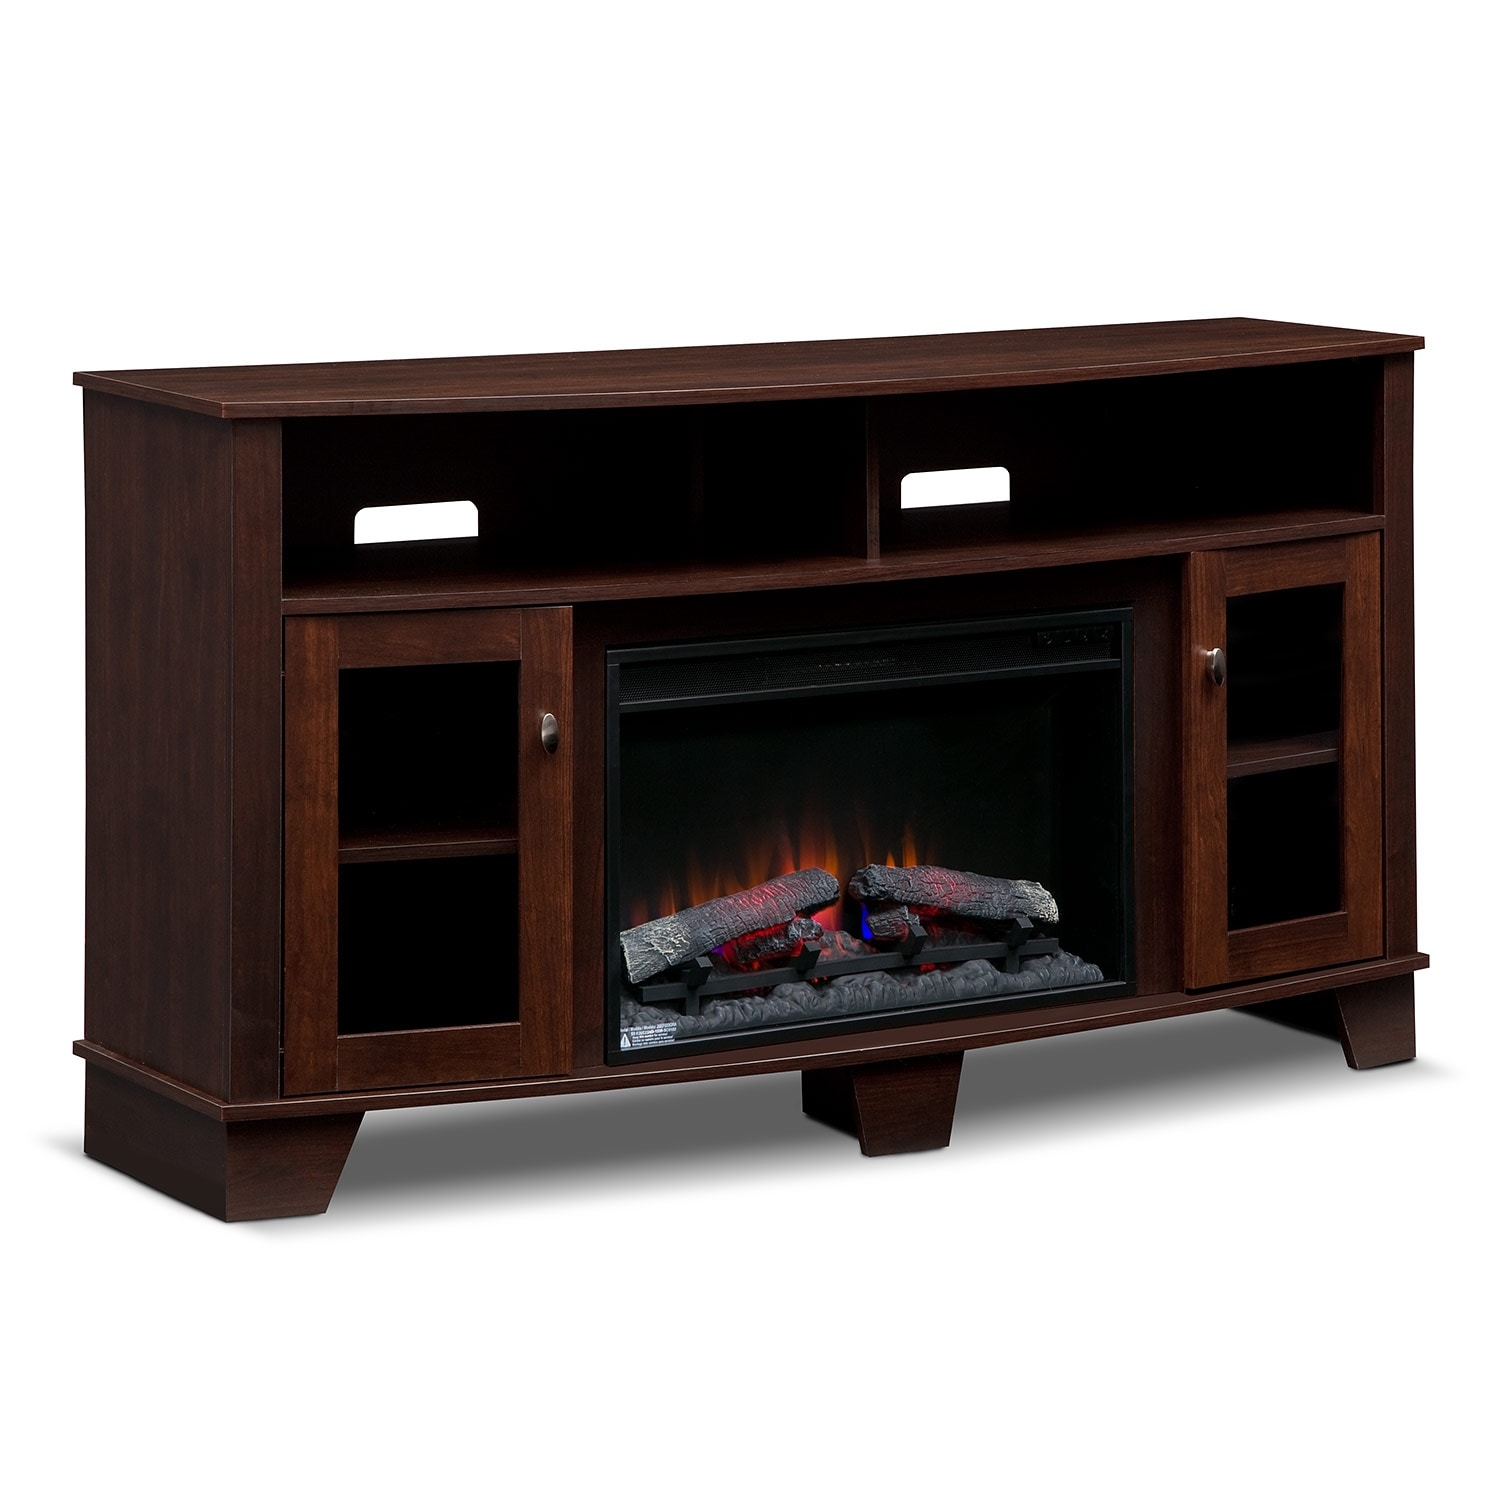 Entertainment Furniture - Bentwood Fireplace TV Stand with Traditional Insert - Dark Cherry